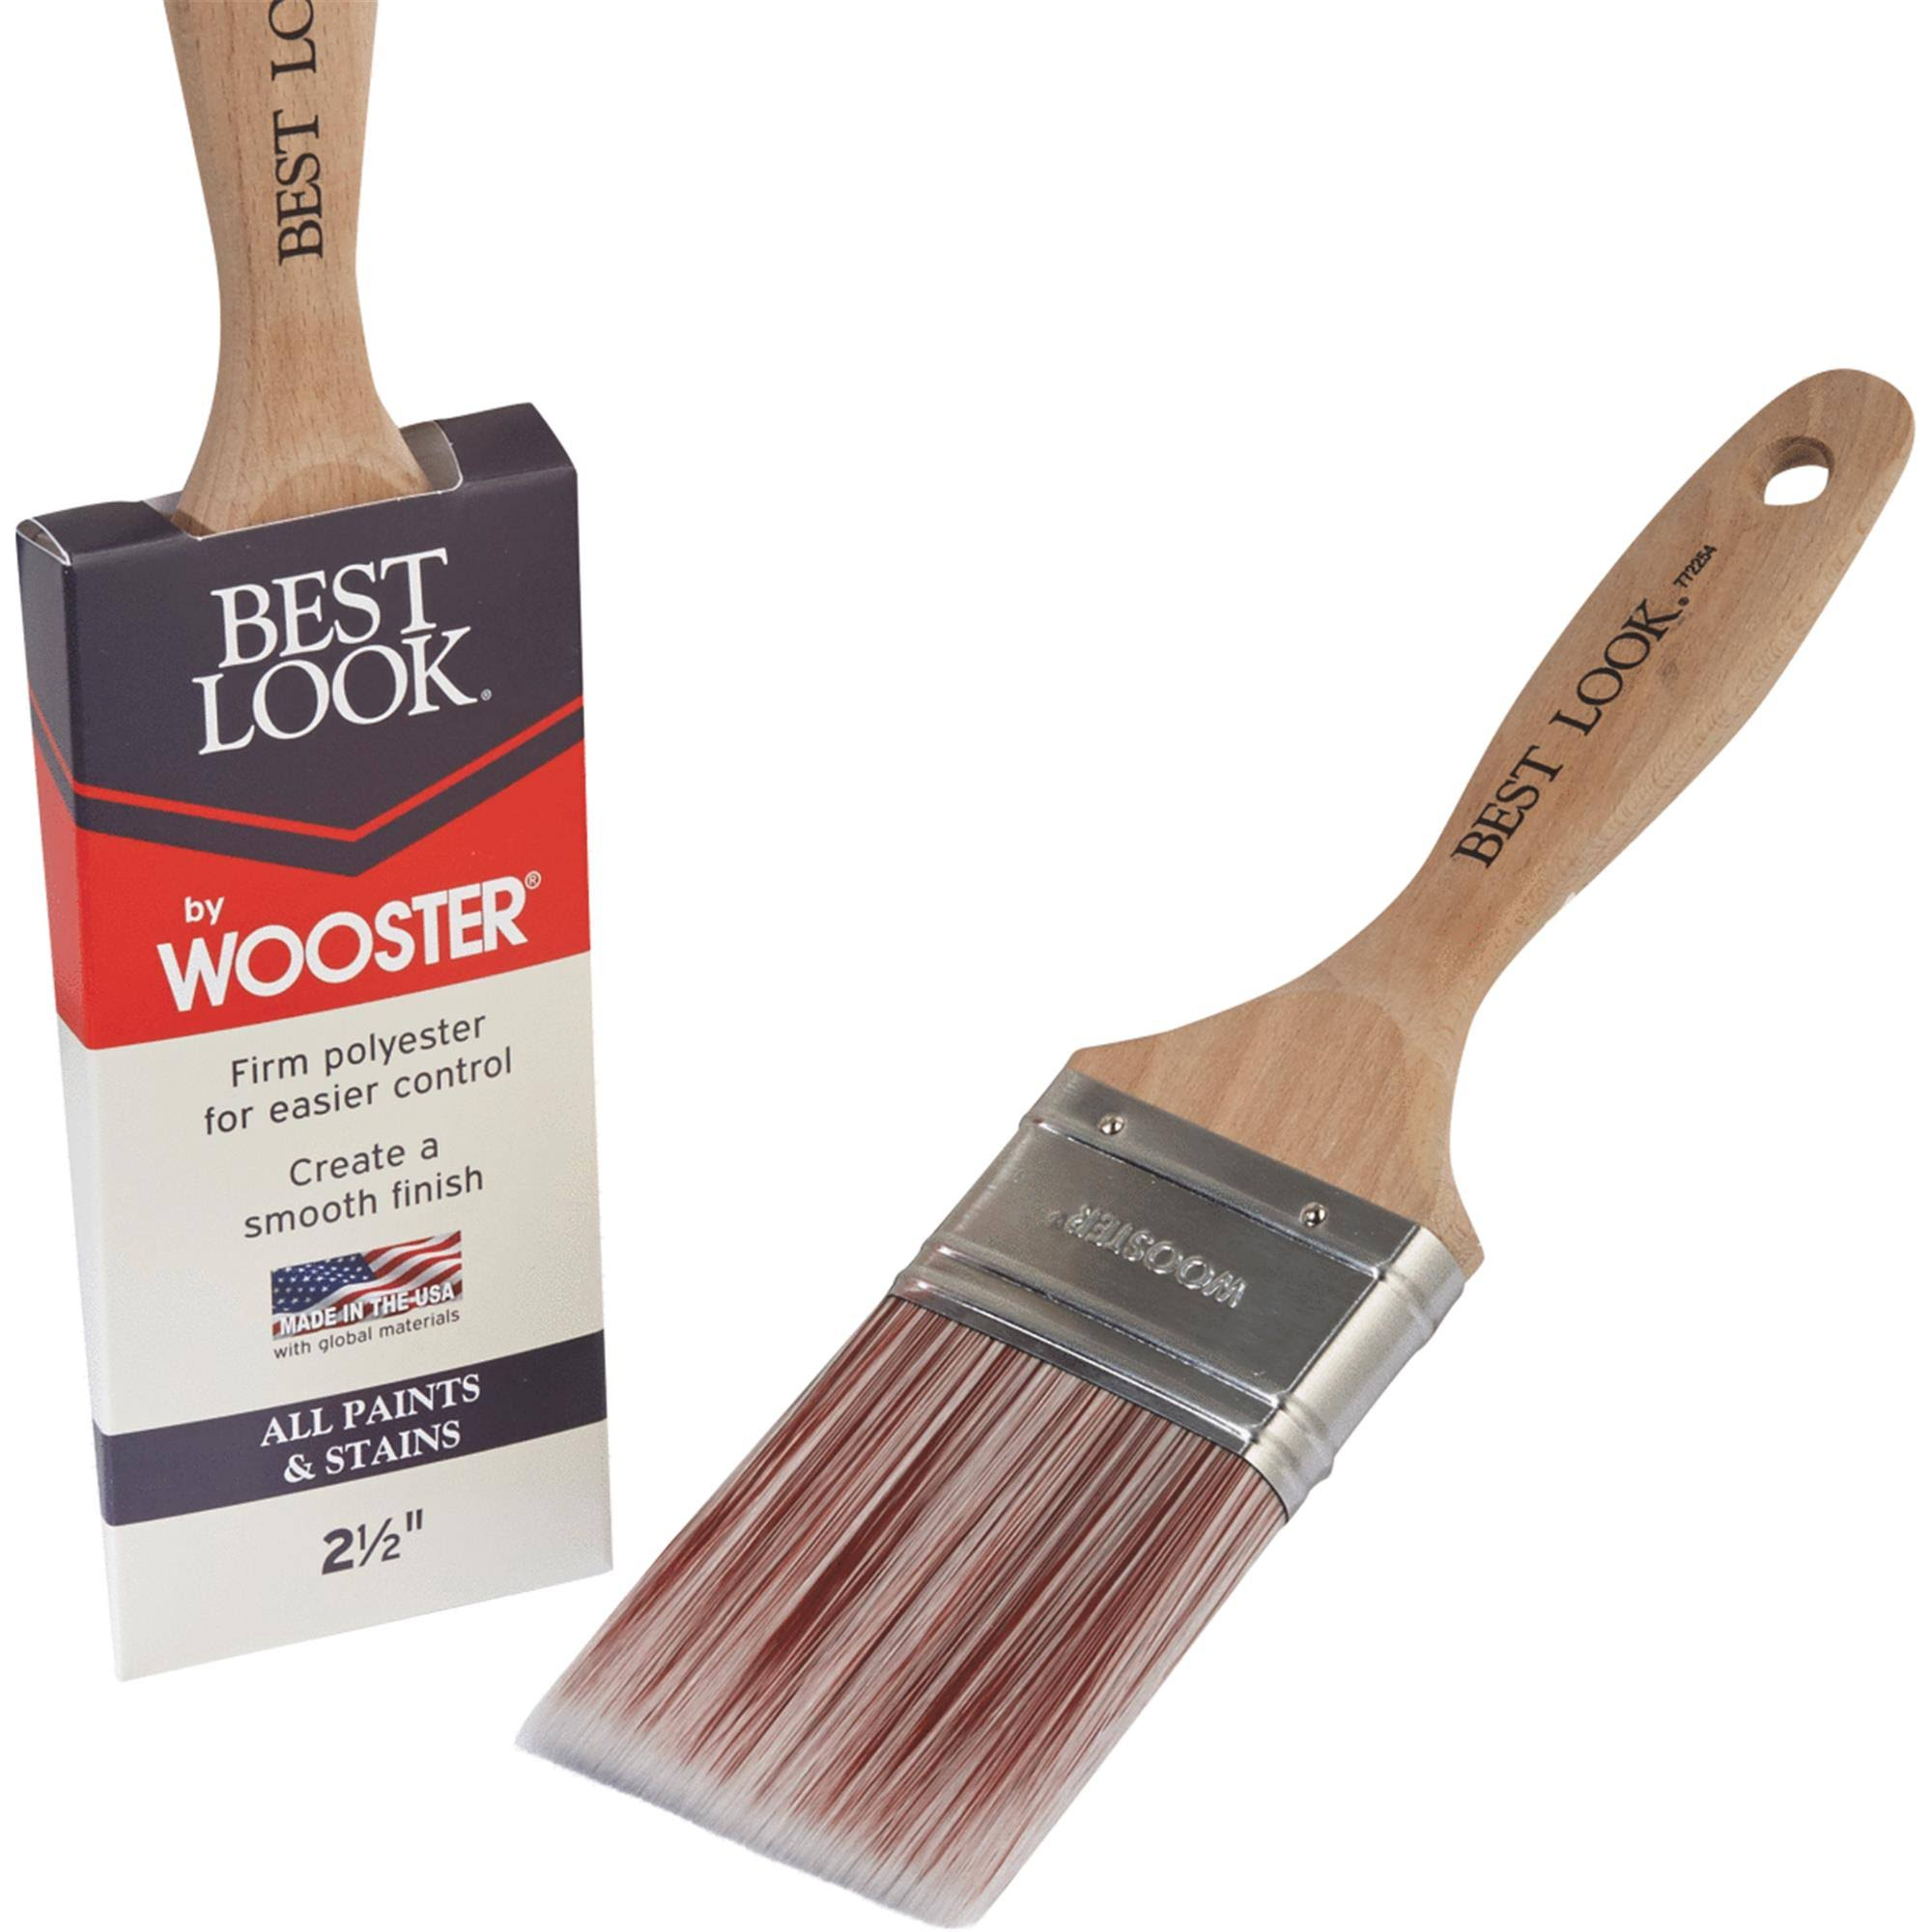 Best Look by Wooster Polyester Paint Brush - D4024-2 1/2